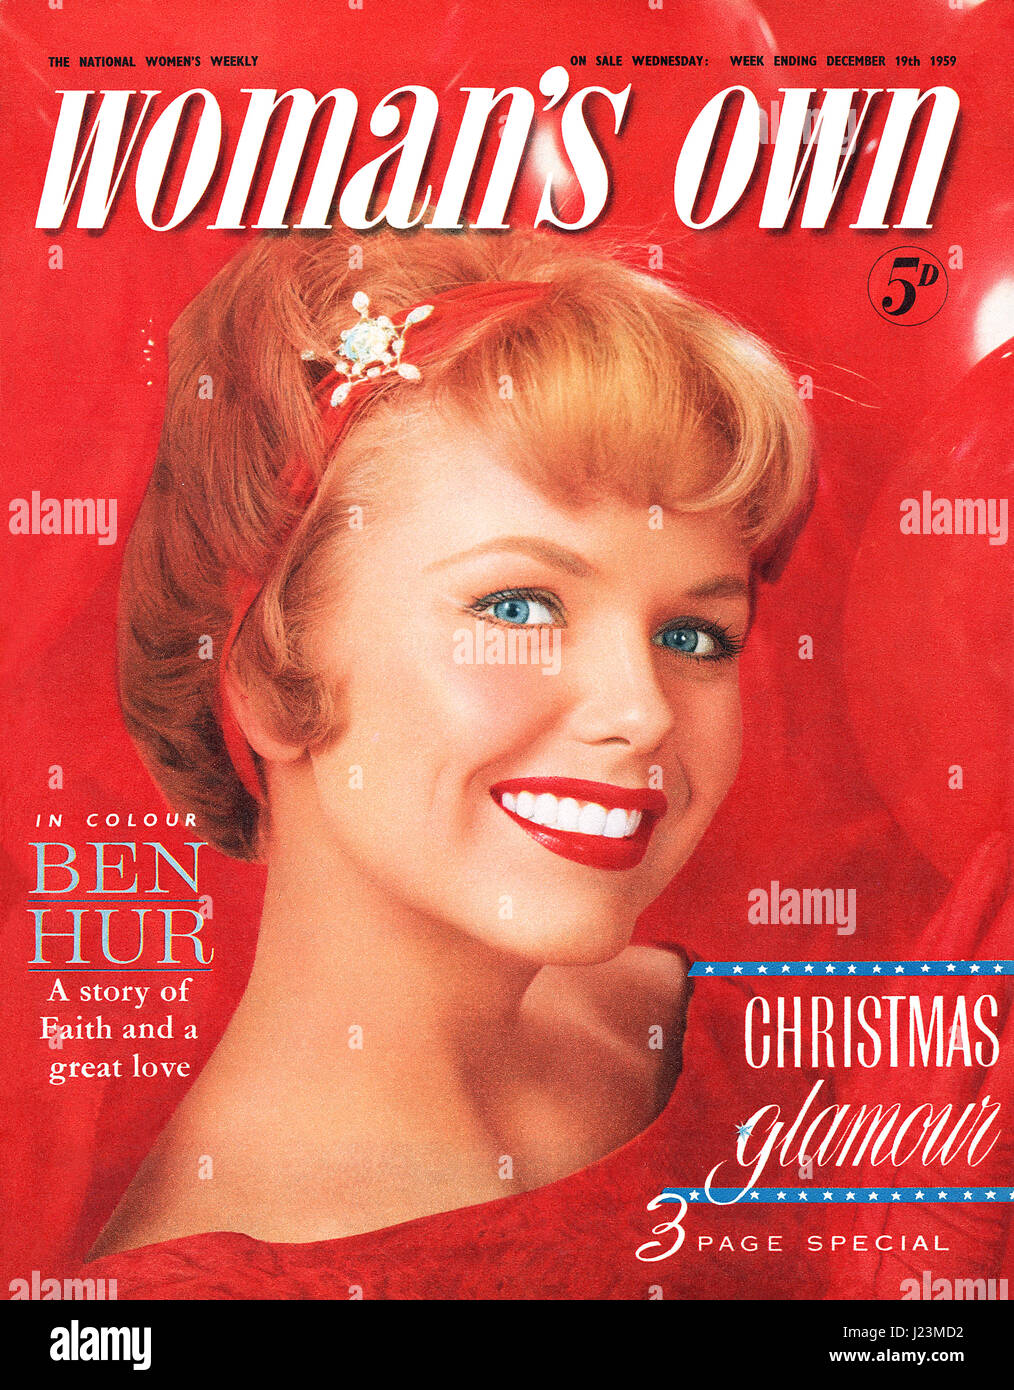 Front cover of Woman's Own magazine for the week ending December 19th 1959. A Christmas issue featuring photography - Stock Image